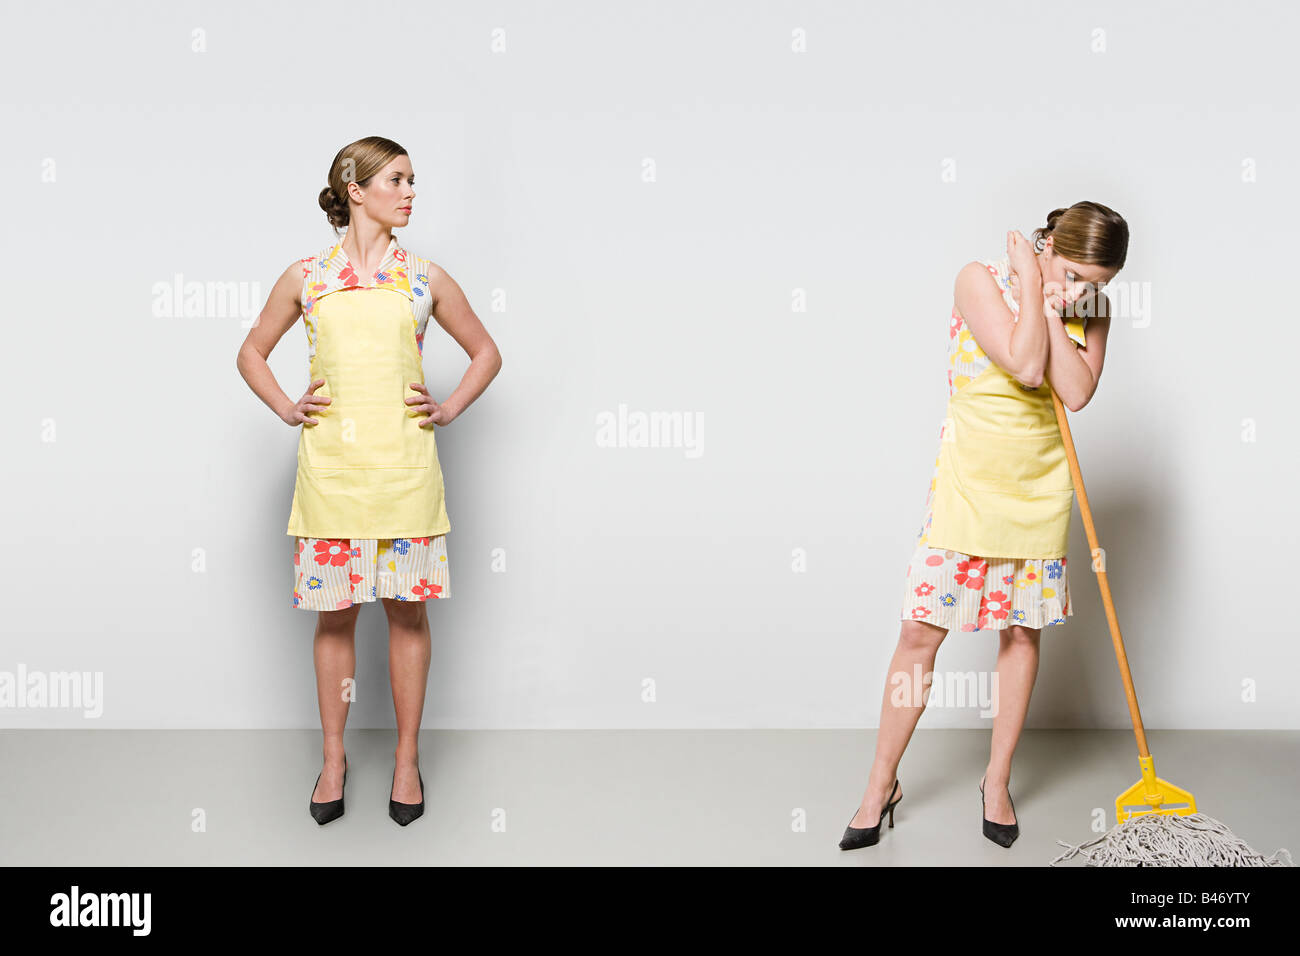 Woman with a mop - Stock Image